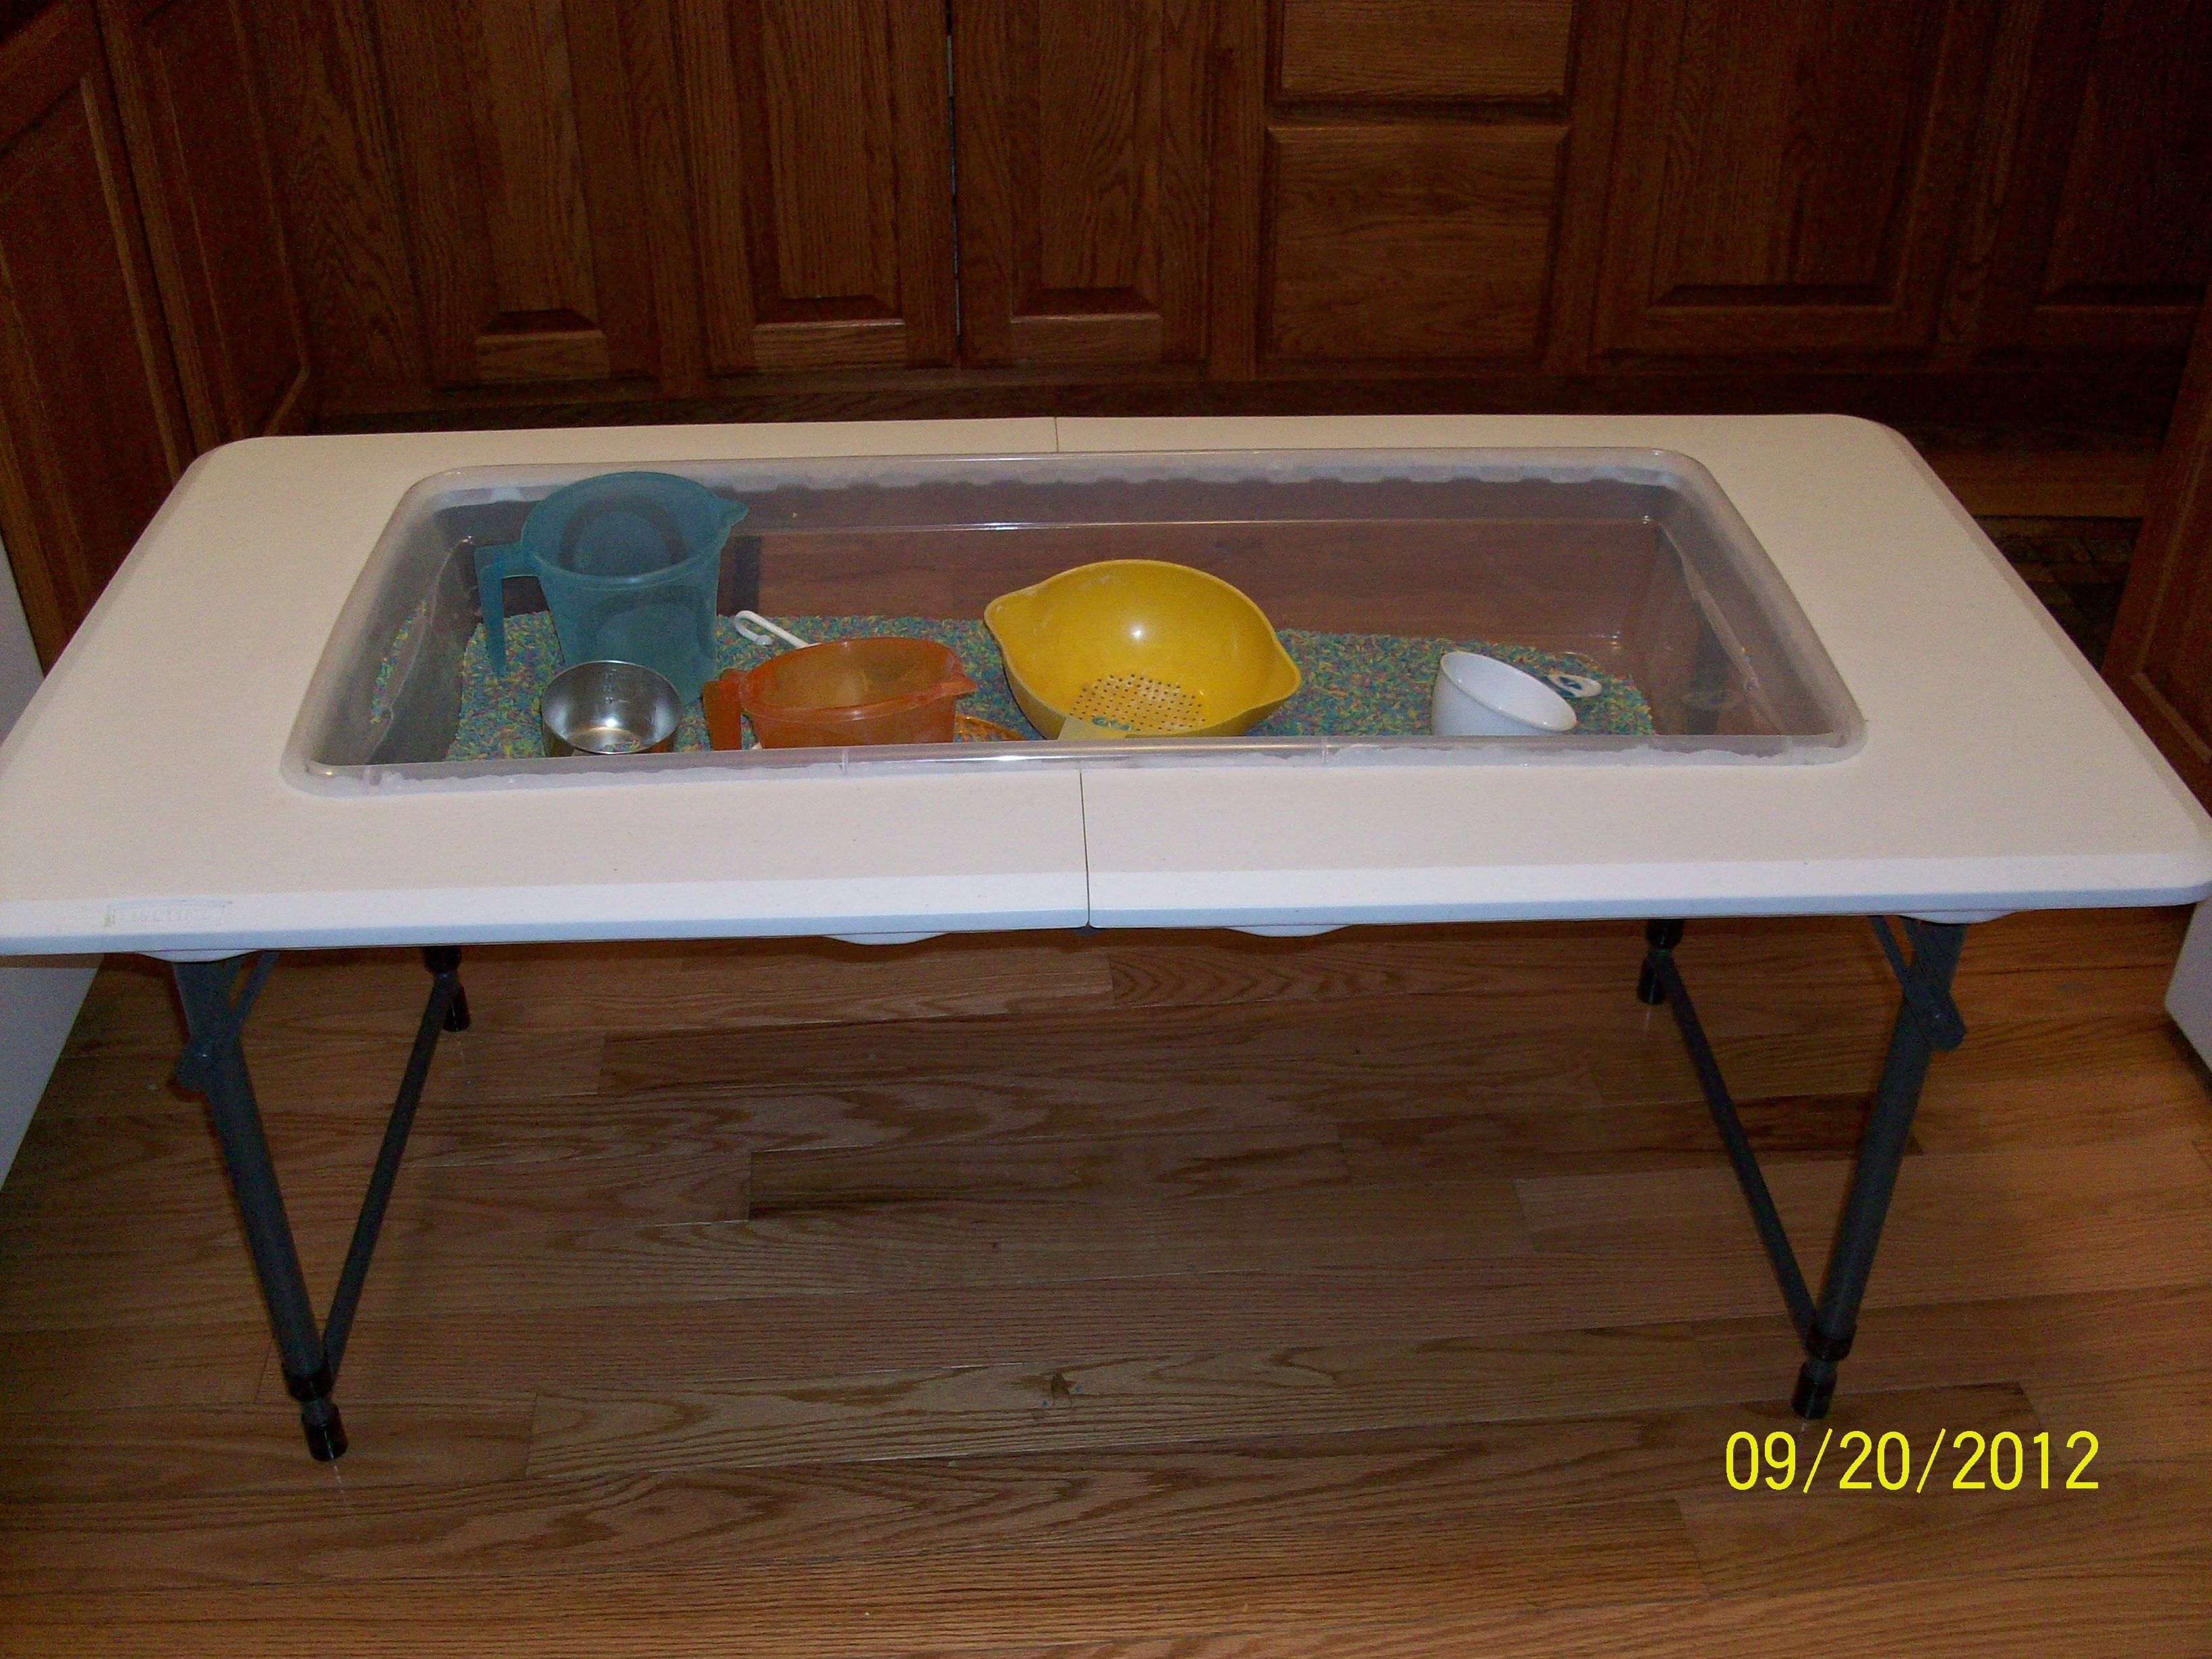 4 foot adjustable height folding table - I Made This Daycare Sensory Table Using A 4 Foot Fold In Half Table And A